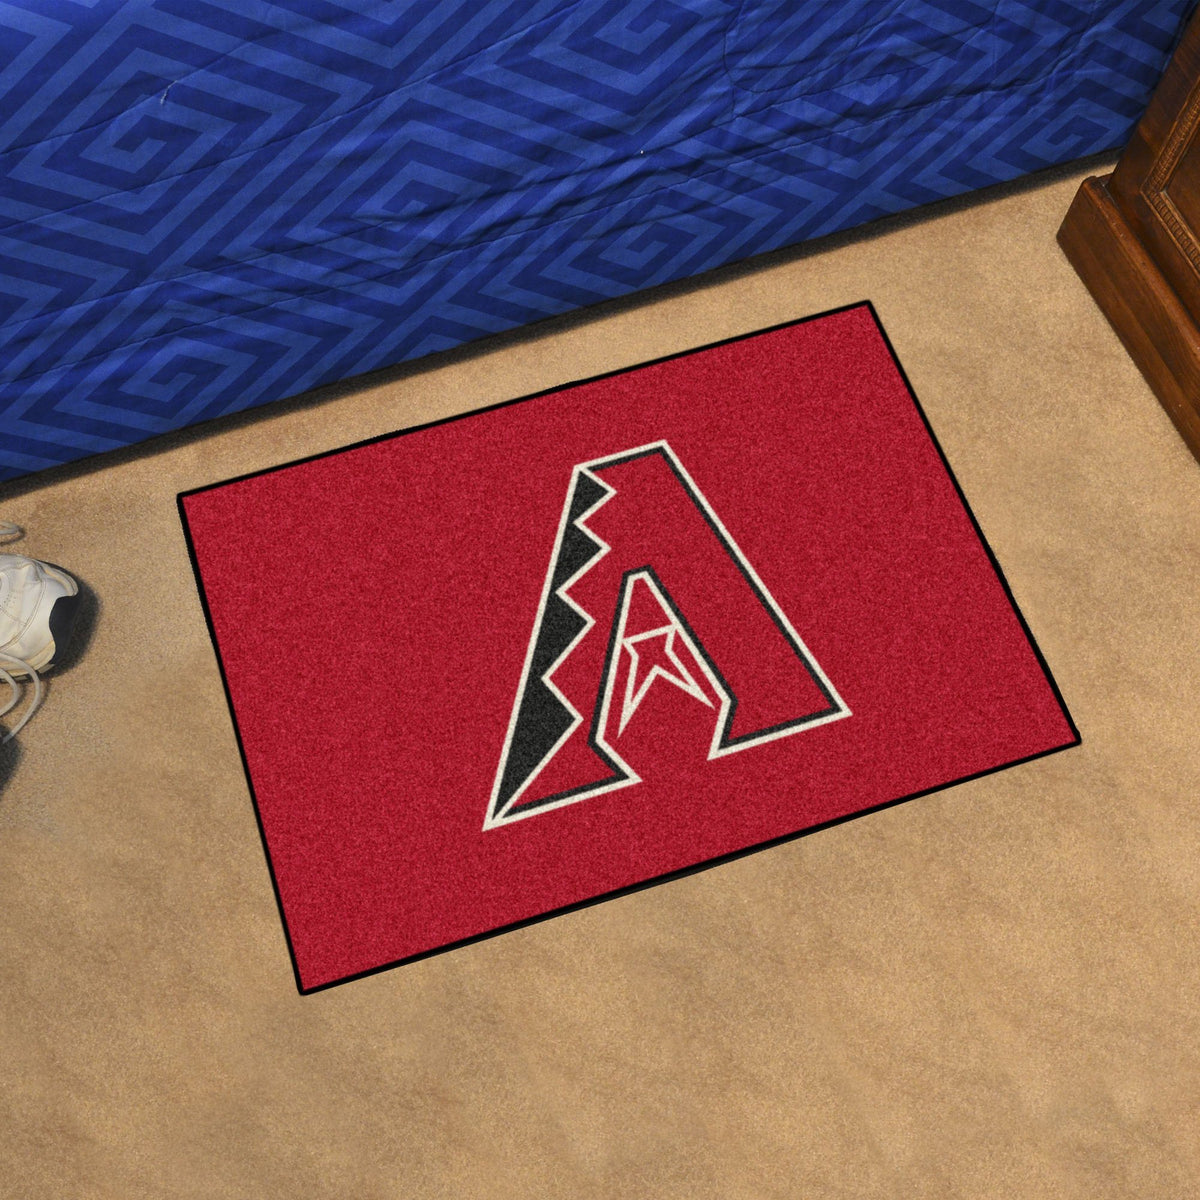 MLB - Starter Mat MLB Mats, Rectangular Mats, Starter Mat, MLB, Home Fan Mats Arizona Diamondbacks